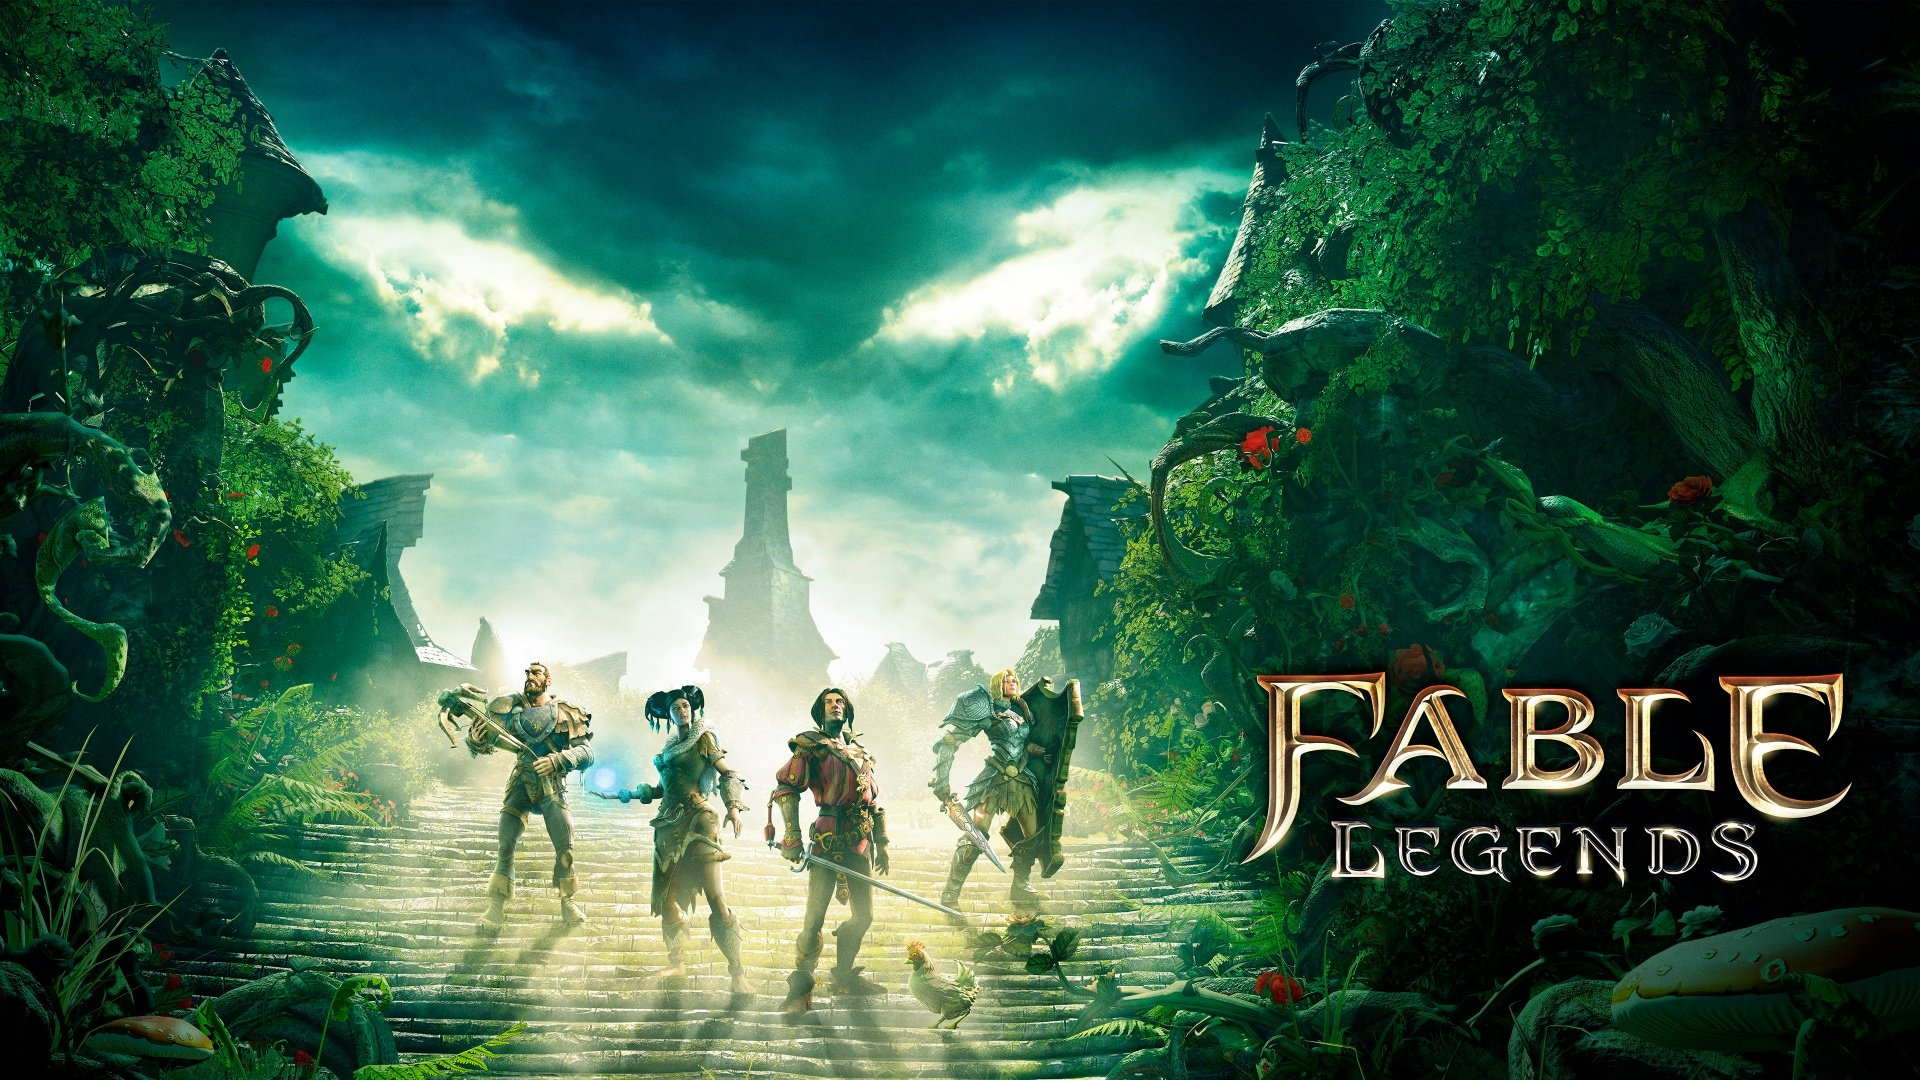 Fable-Legends-Game-Wallpaper-1920x1080